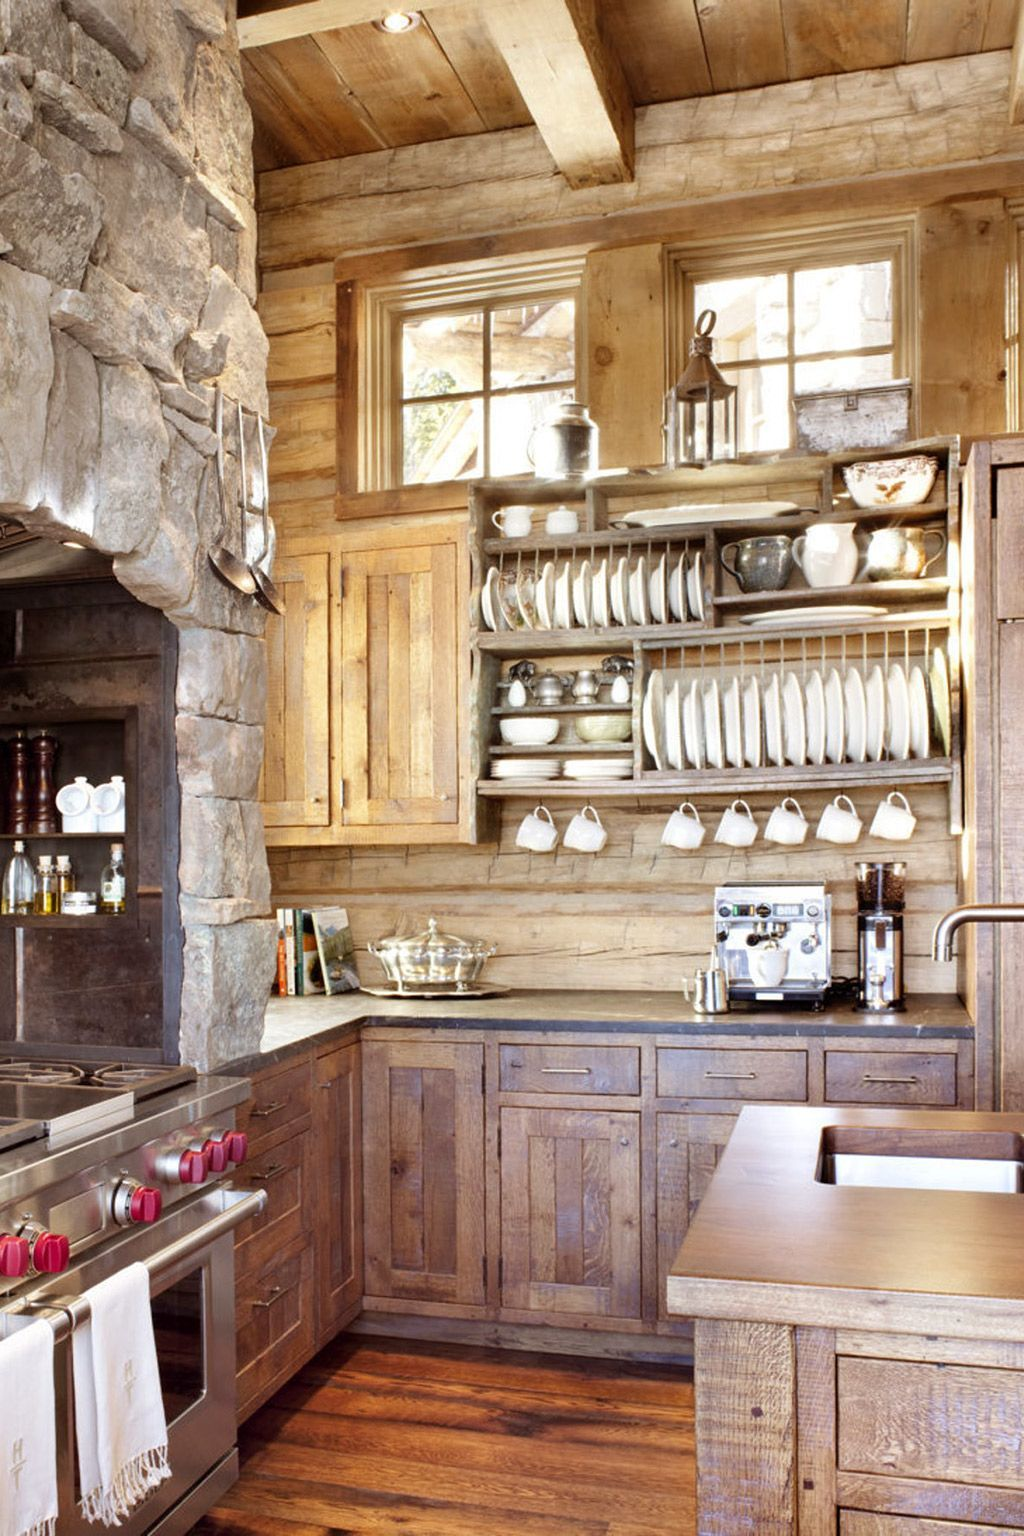 30 rustic kitchens designed by top interior designers designed designers interior k in 2020 on kitchen interior top view id=43031